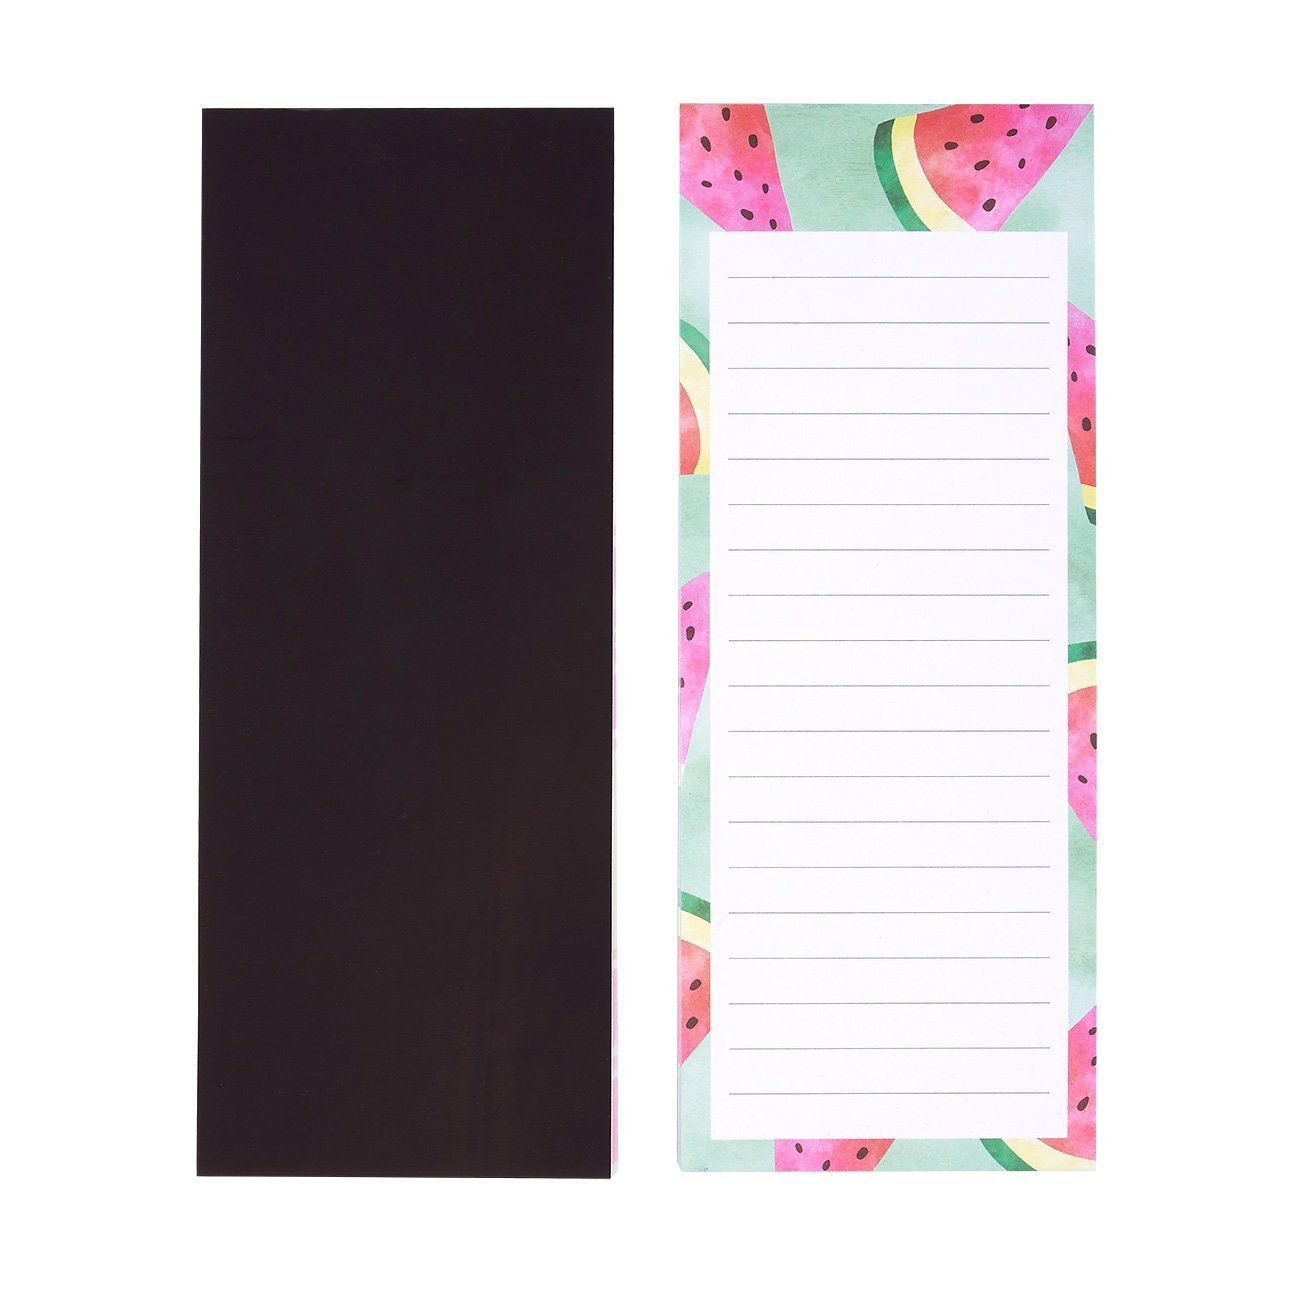 Juvale 6-Pack To Do List 3.5 x 9 Inches 60 Sheets Per Memo Pad Grocery Shopping Colorful Fruit Designs and Reminders Magnetic Notepads for Fridge